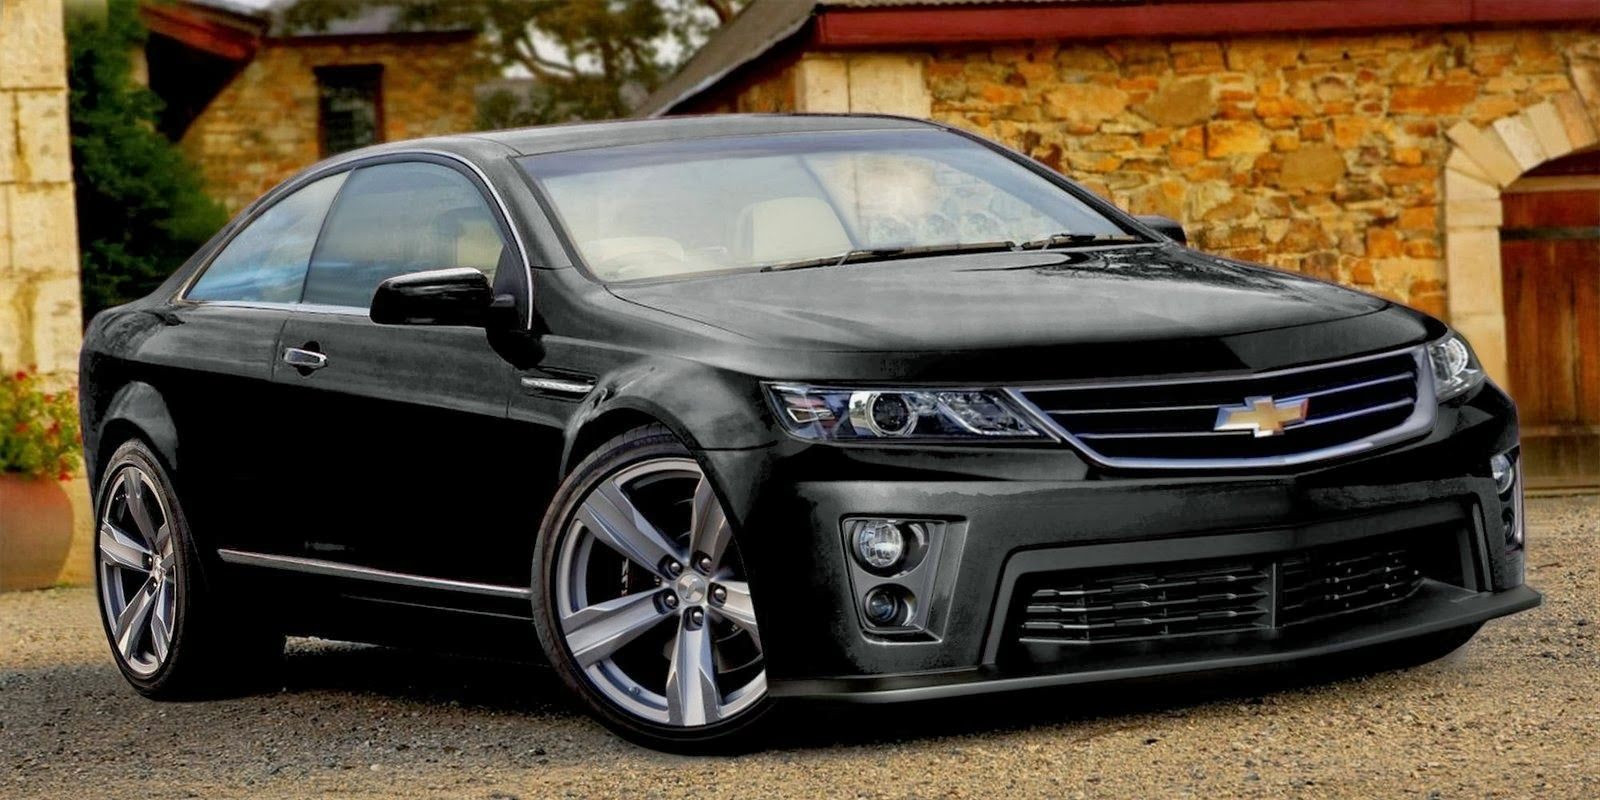 Marvelous New Chevy Monte Carlo 2015 Black Sports